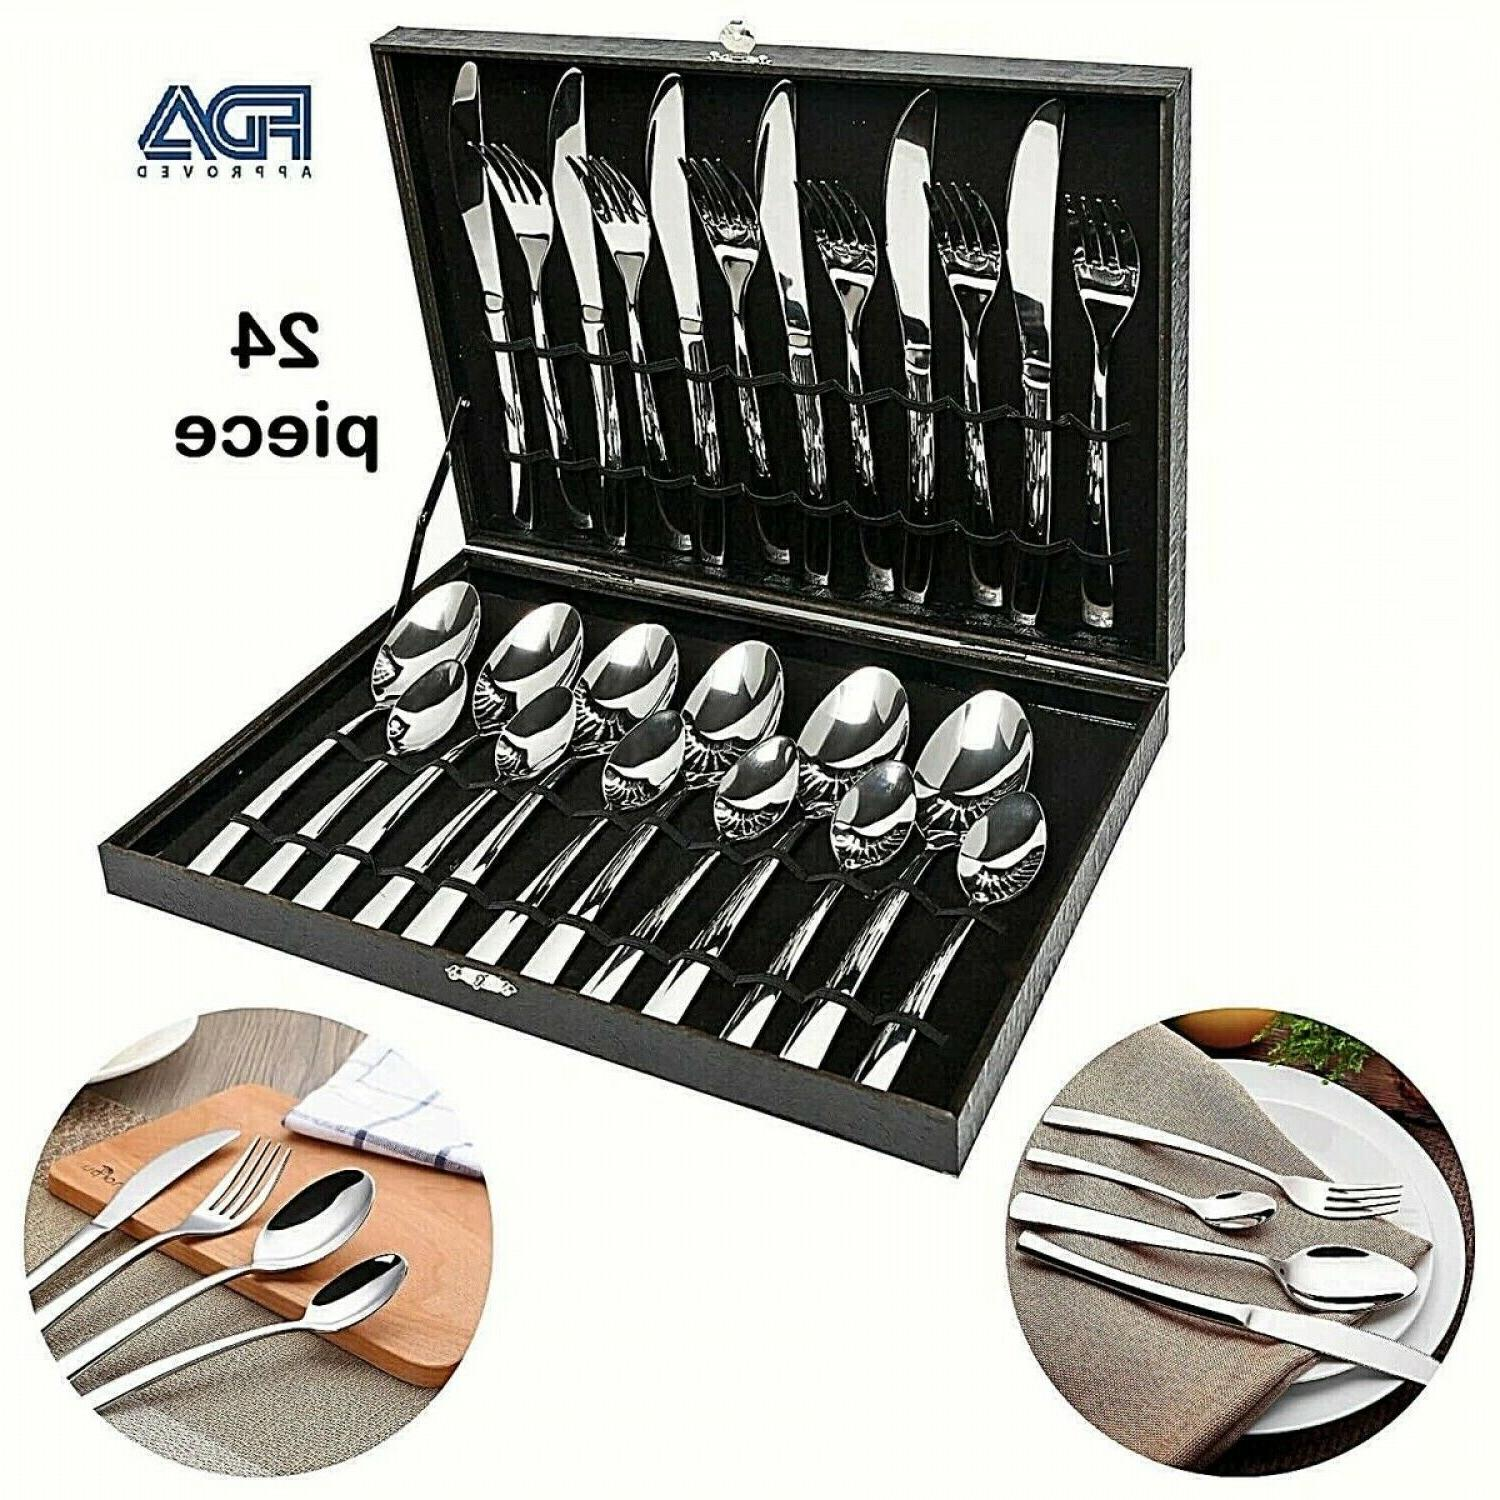 modern flatware set silverware large cutlery kitchen